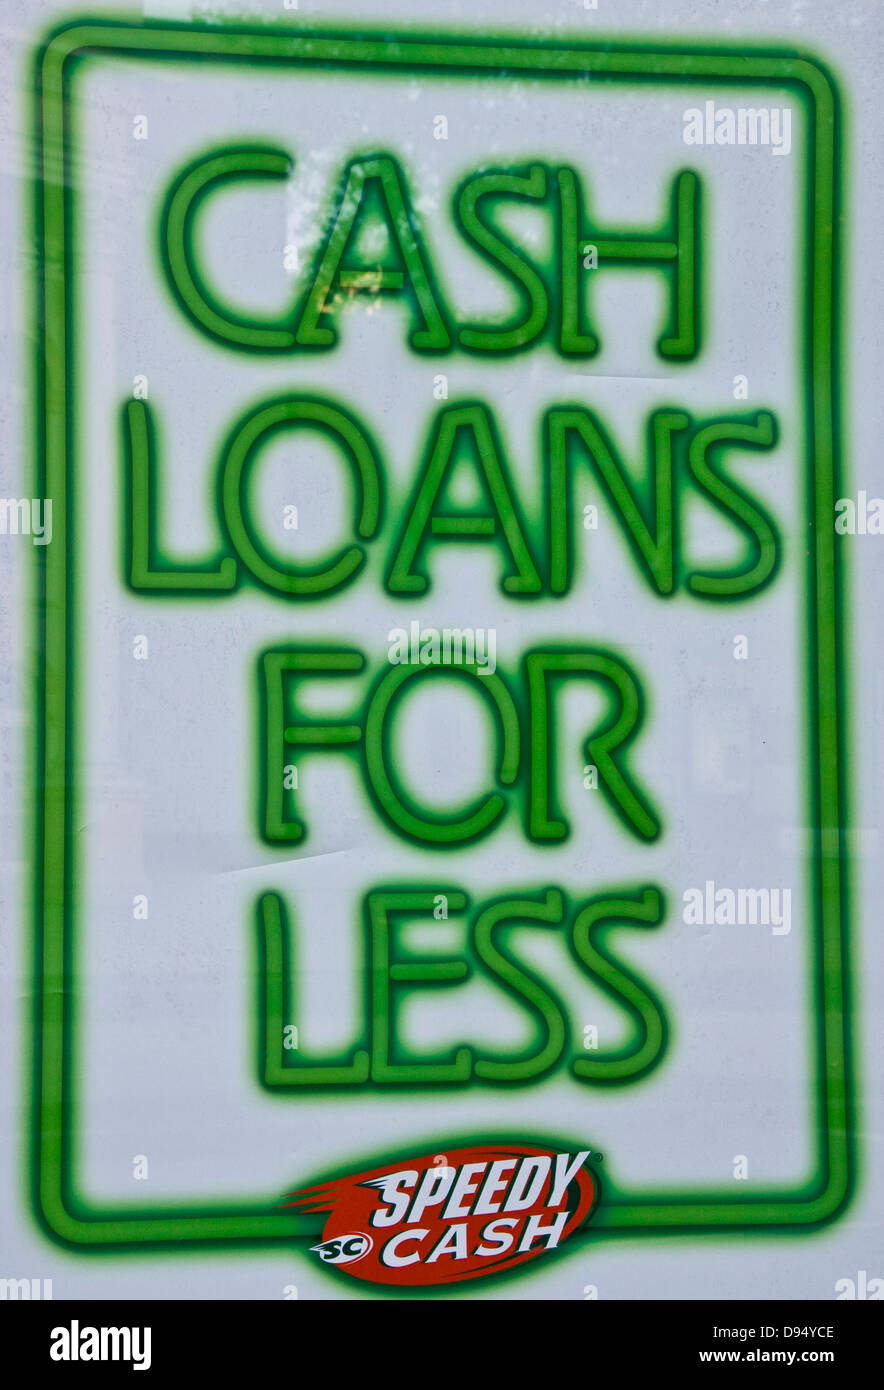 Cash loans all done online image 7